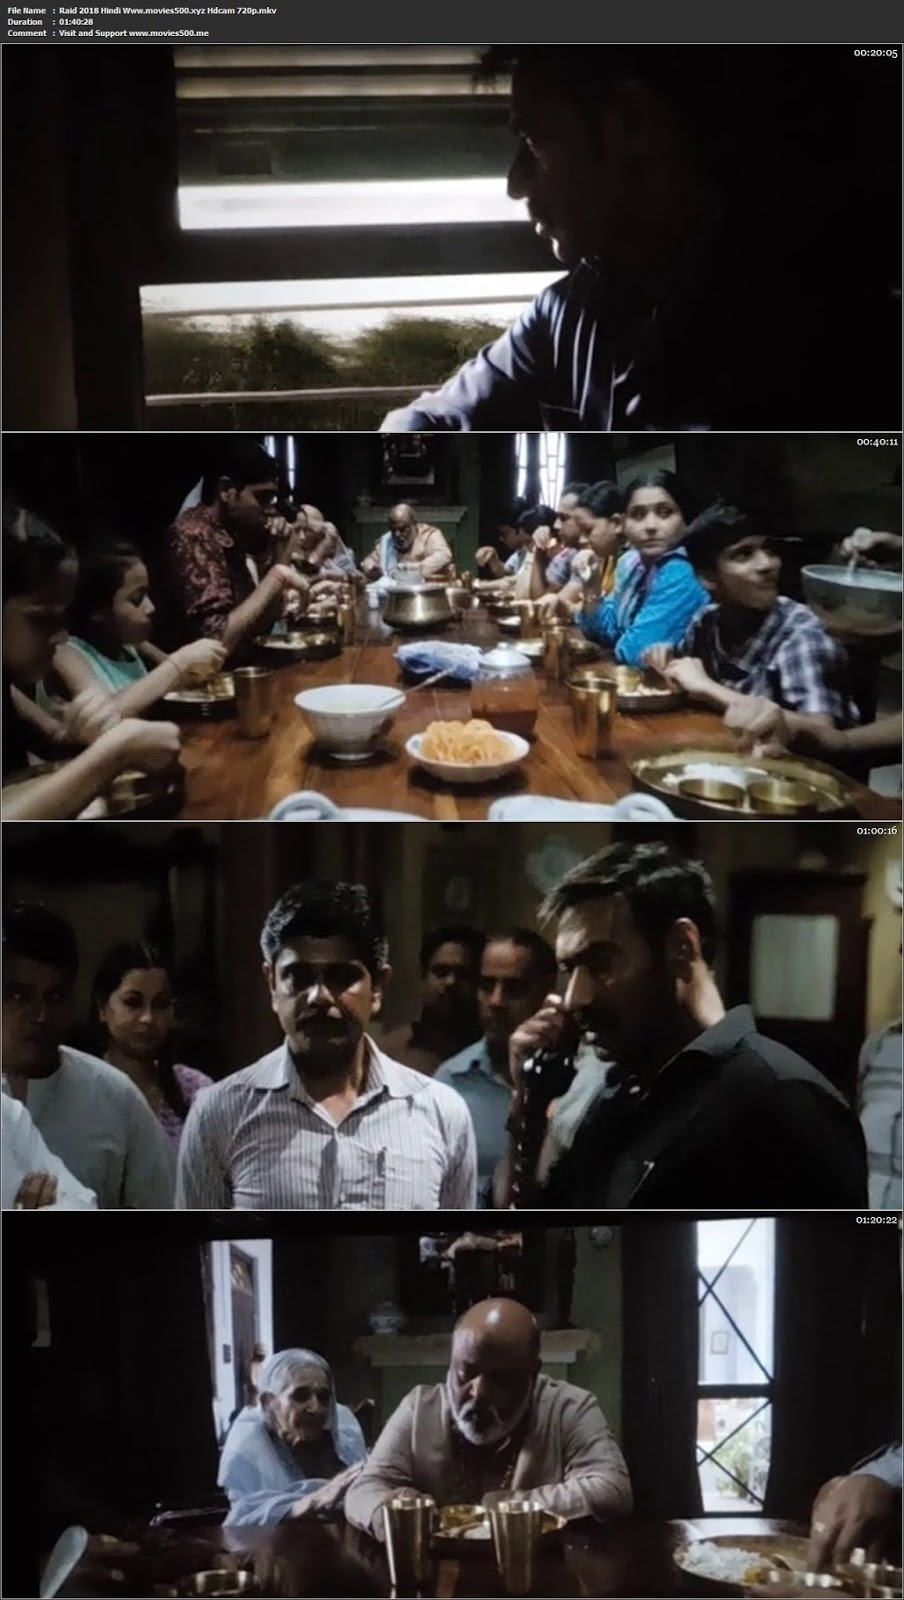 Raid 2018 Hindi pDVDRip Full Movie 720p 600MB at movies500.site